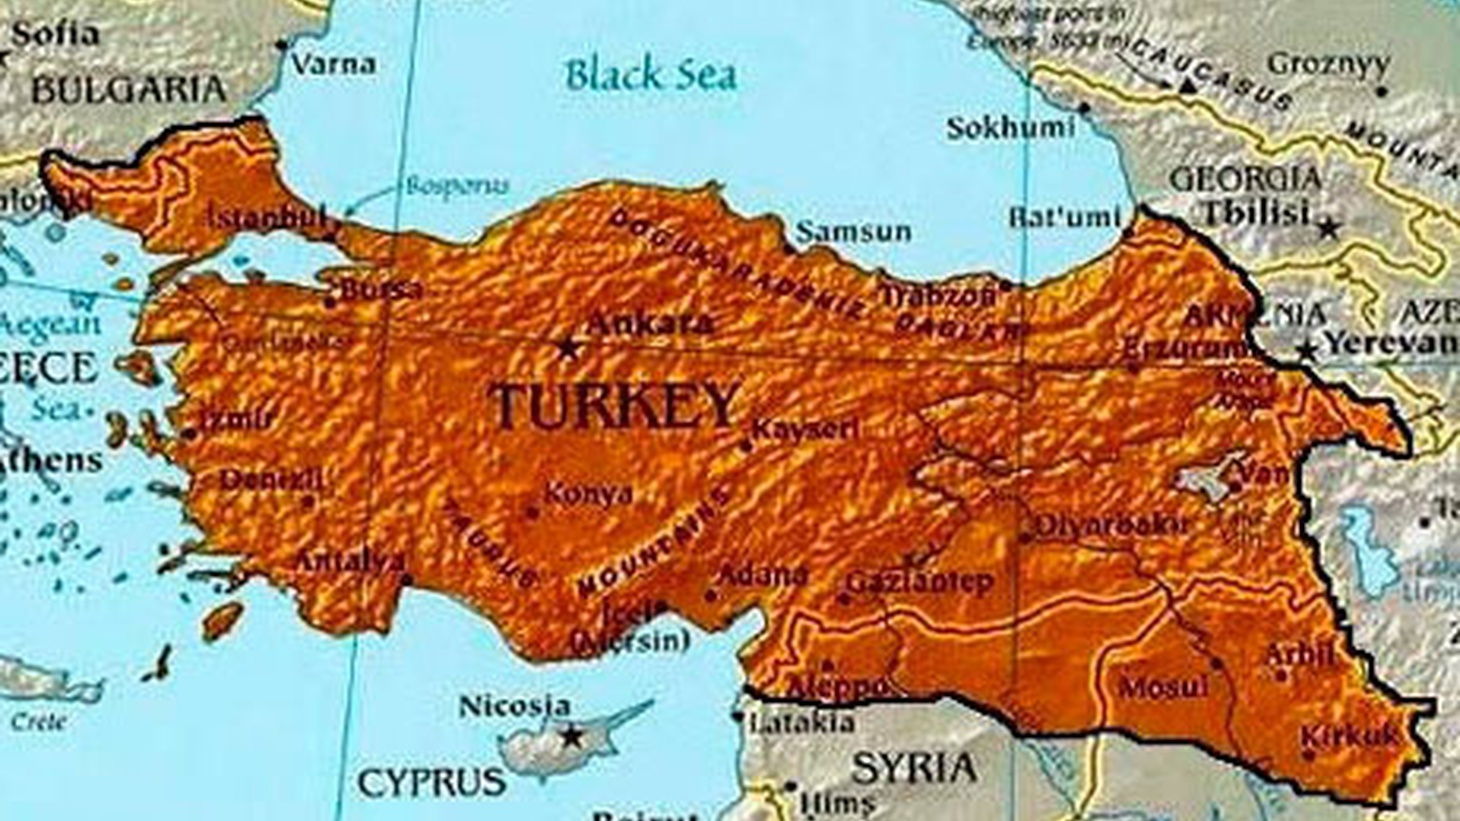 When the Ottoman Empire collapsed after World War I, Turkey did not get all the land it thought it was entitled to. Now, the current President is demanding the right to intervene in Mosul, and possibly other places beyond Turkey's recognized borders.